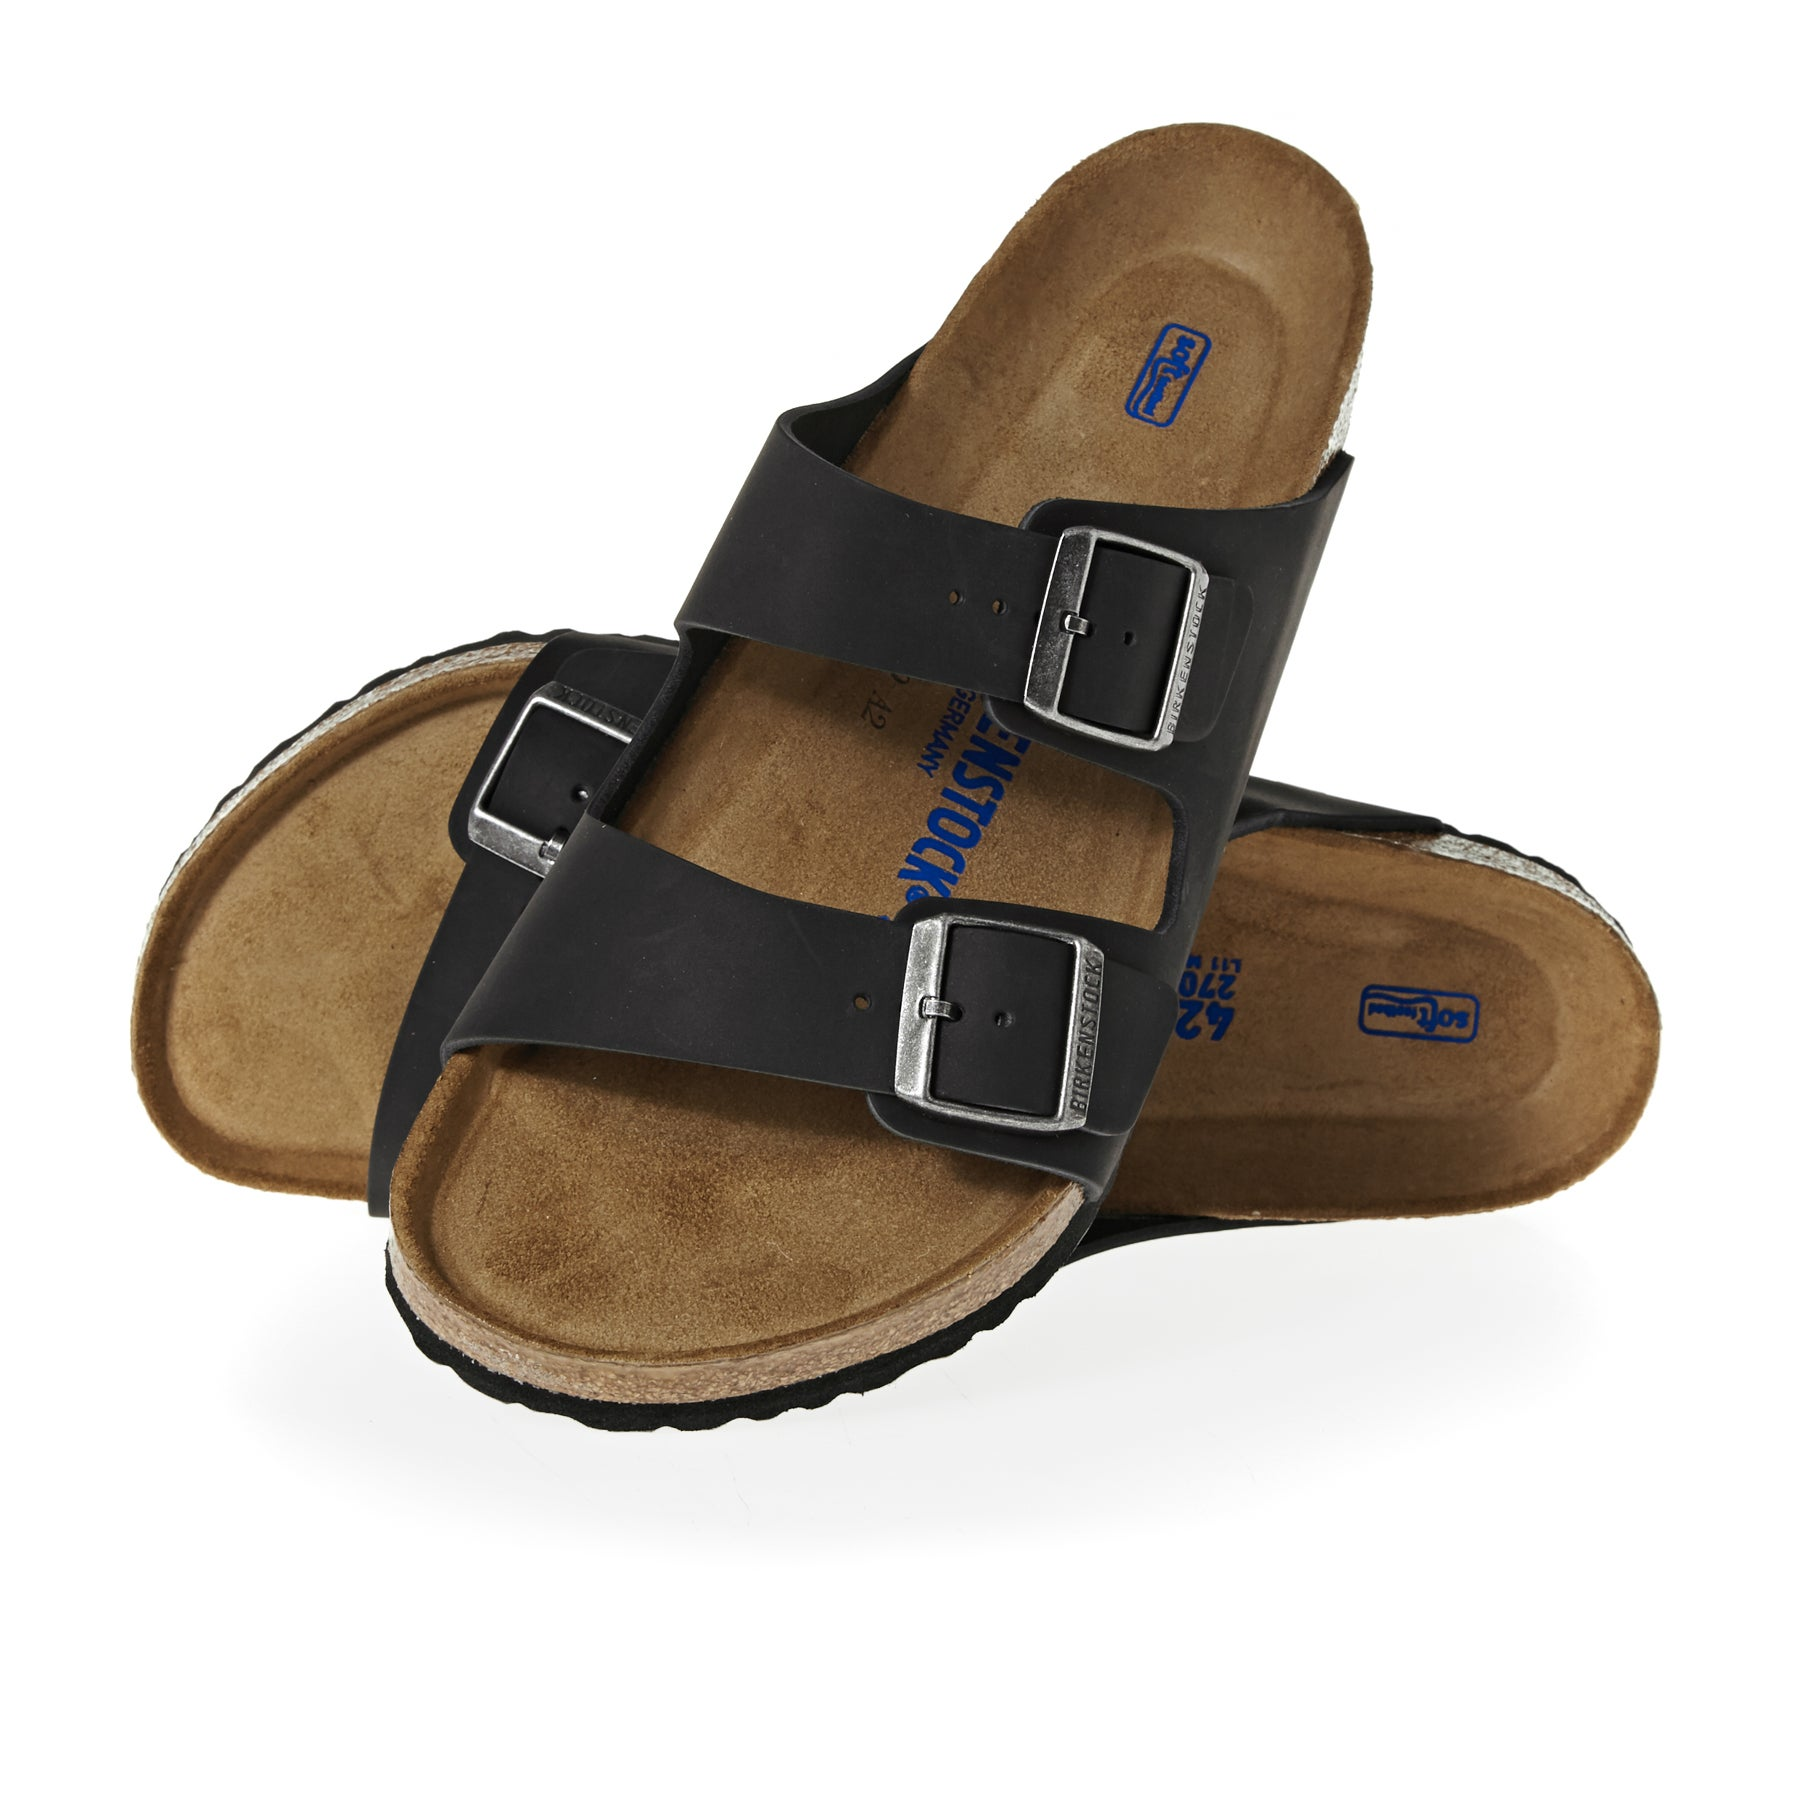 Birkenstock Arizona Oiled Leather Soft Footbed Sandals - Black